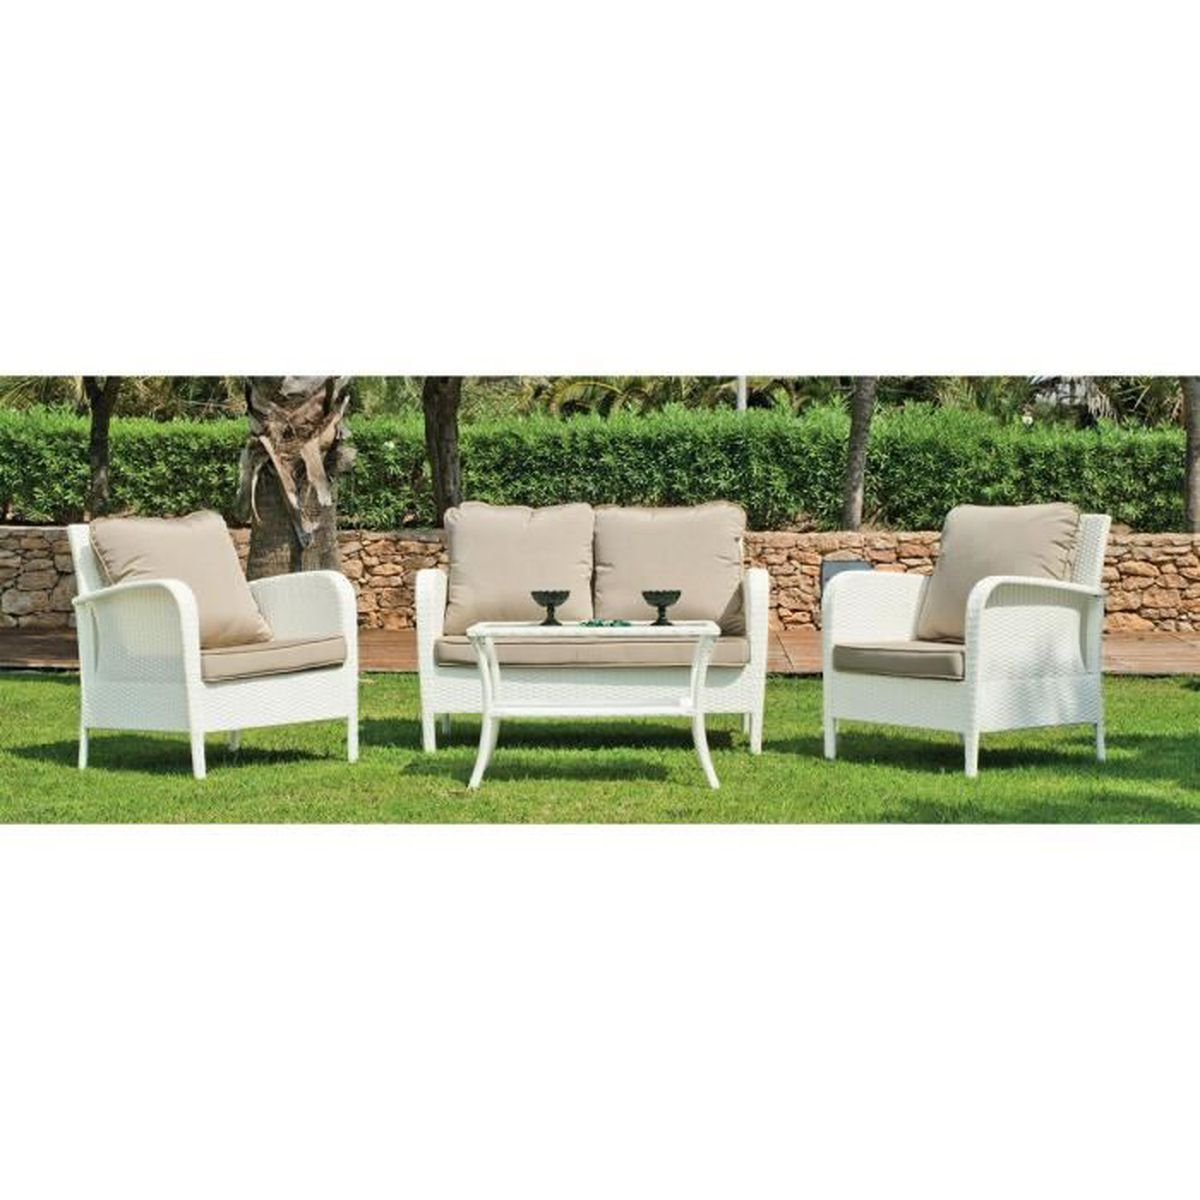 pola salon de jardin 4 places blanc achat vente salon de jardin pola salon de jardin 4. Black Bedroom Furniture Sets. Home Design Ideas